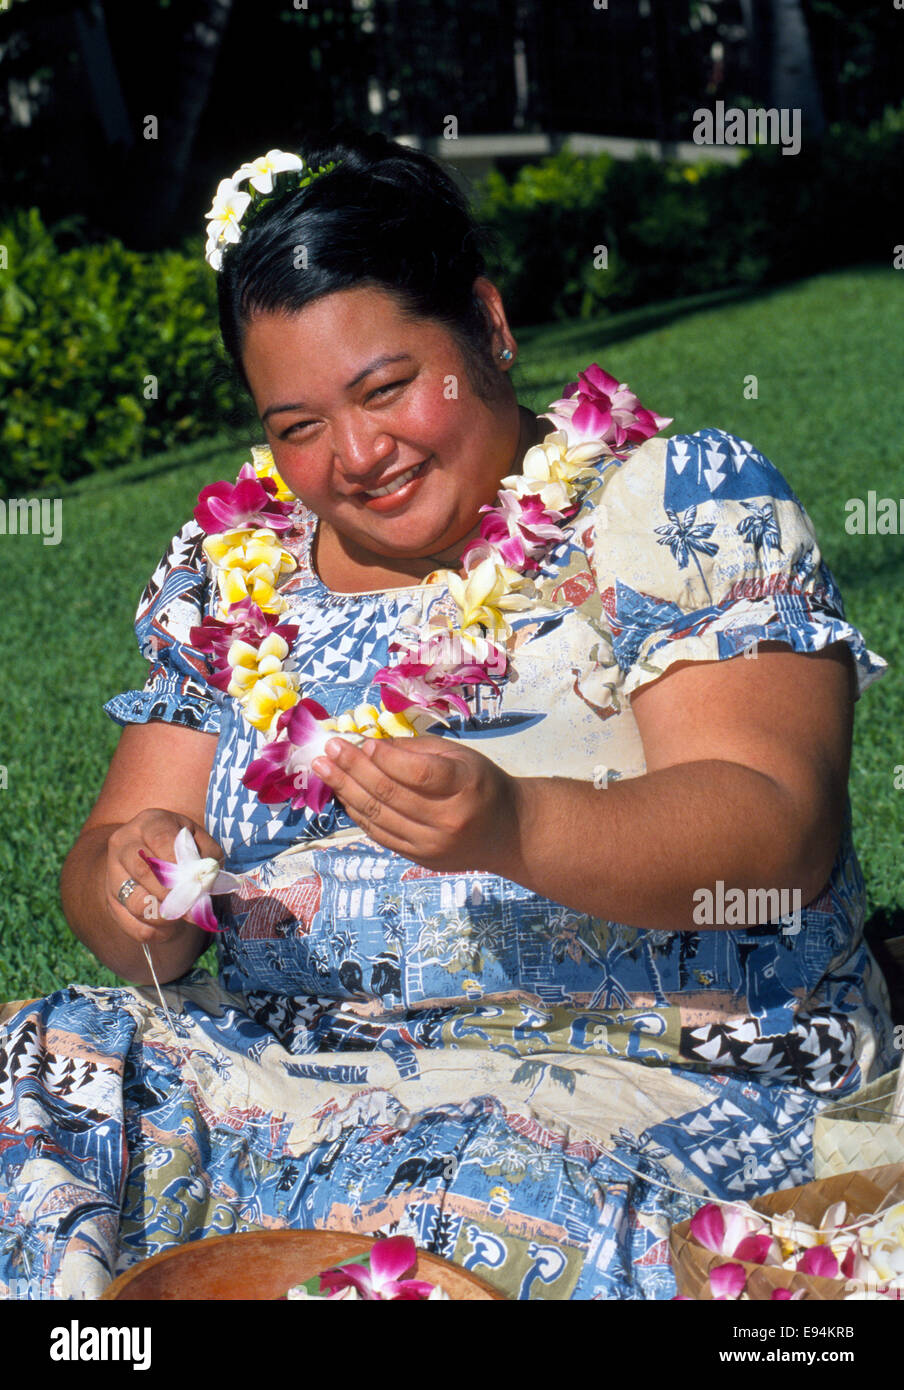 A smiling Hawaiian woman in Honolulu, Hawaii, USA, makes traditional leis with plumeria (frangipani) flowers outdoors - Stock Image